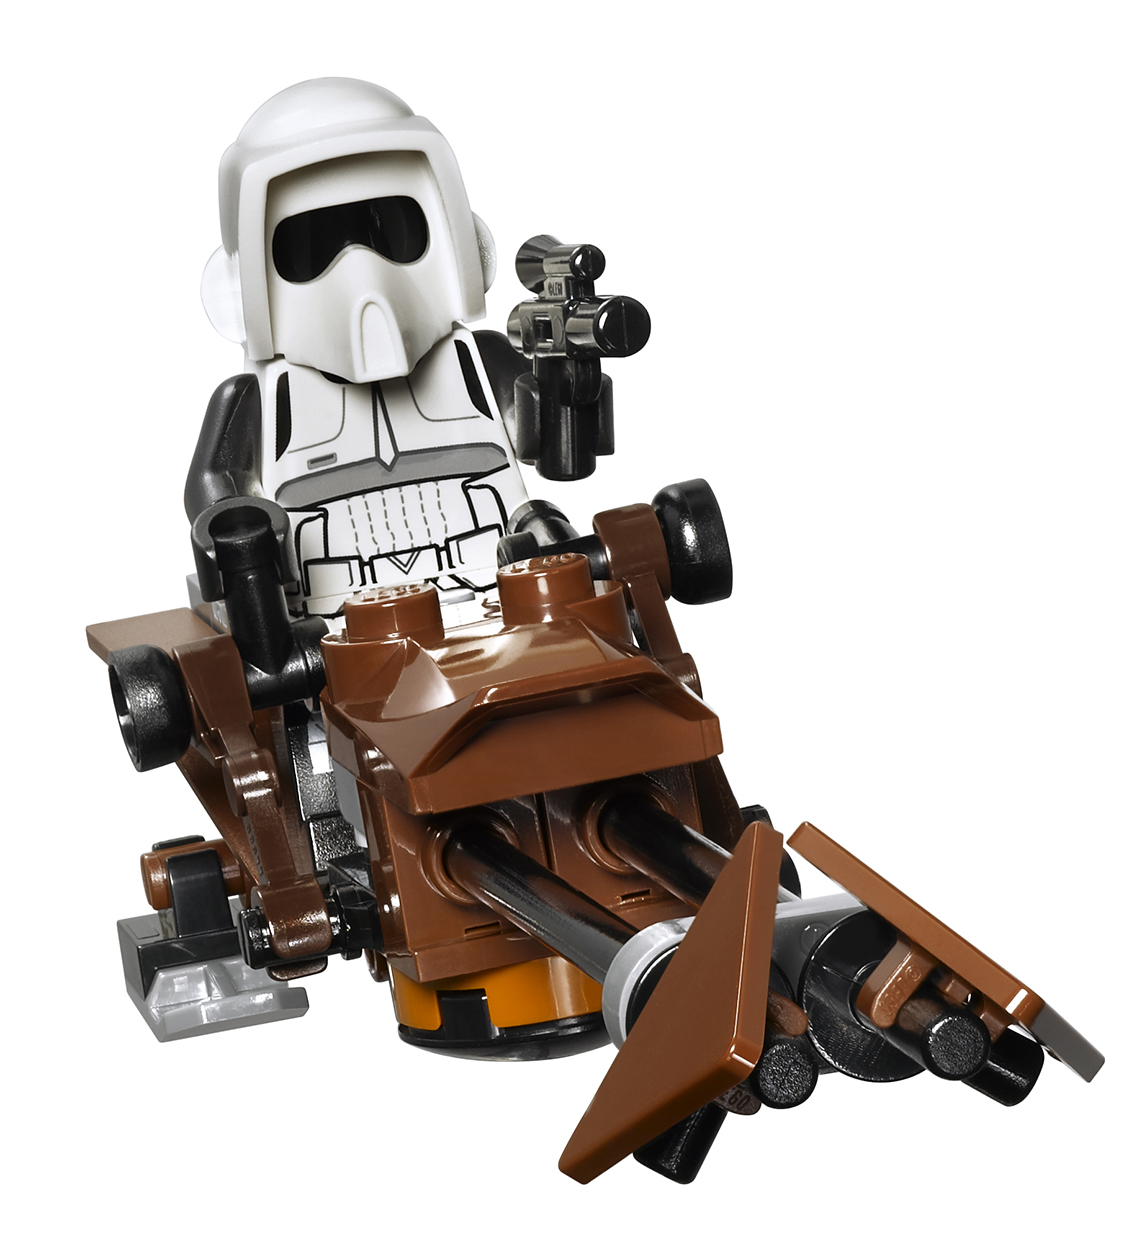 lego 10236 ewok village speederbike. Black Bedroom Furniture Sets. Home Design Ideas